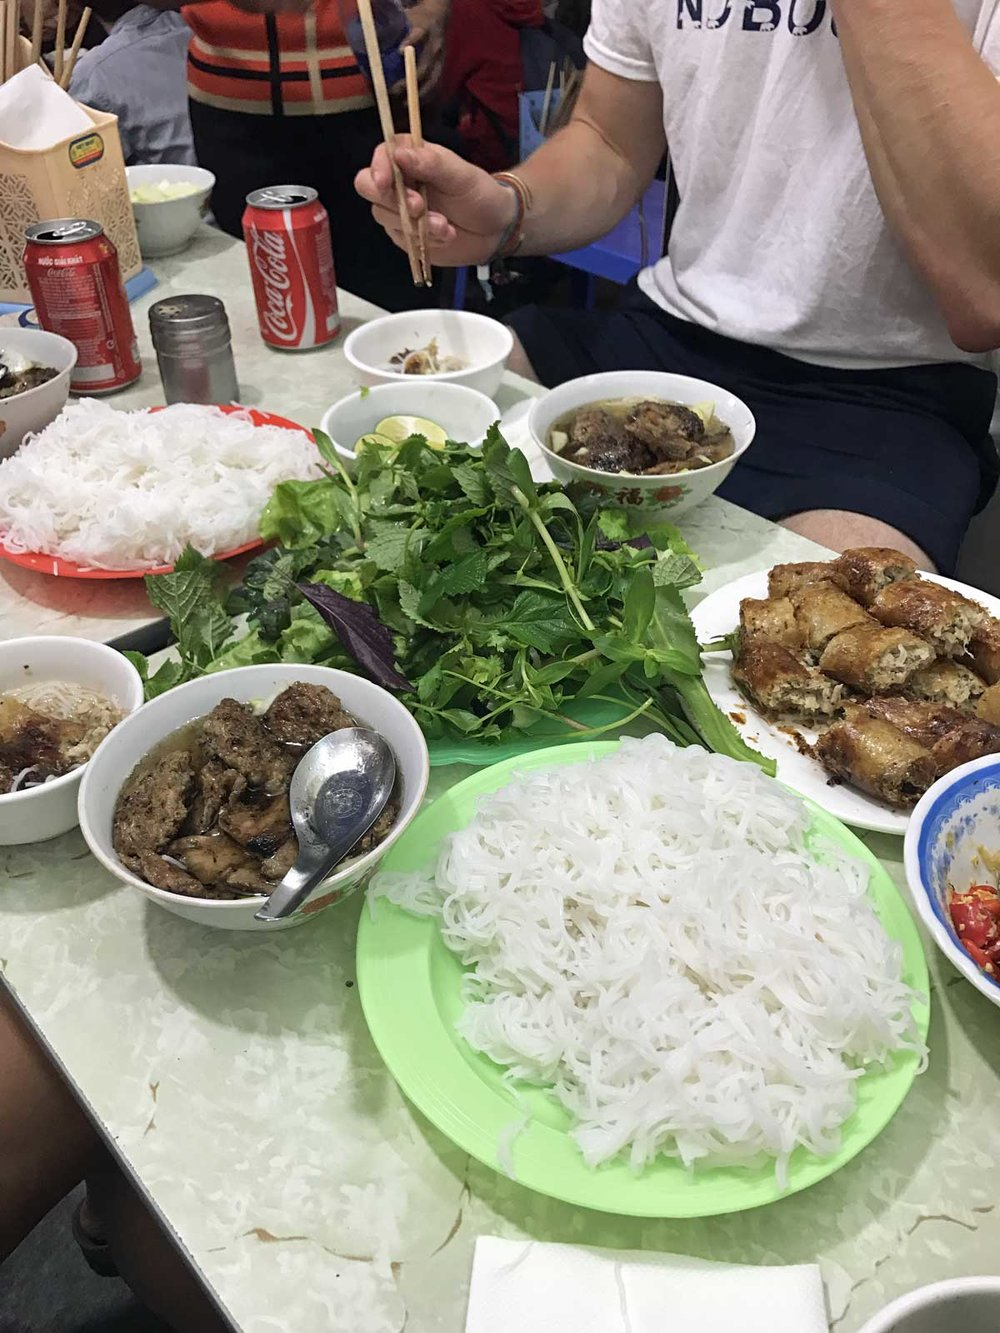 (Left) The Old Quarter, (Right) The crew enjoying bun cha in said Old Quarter: Bun Cha Nem Cua Be Dac Kim.